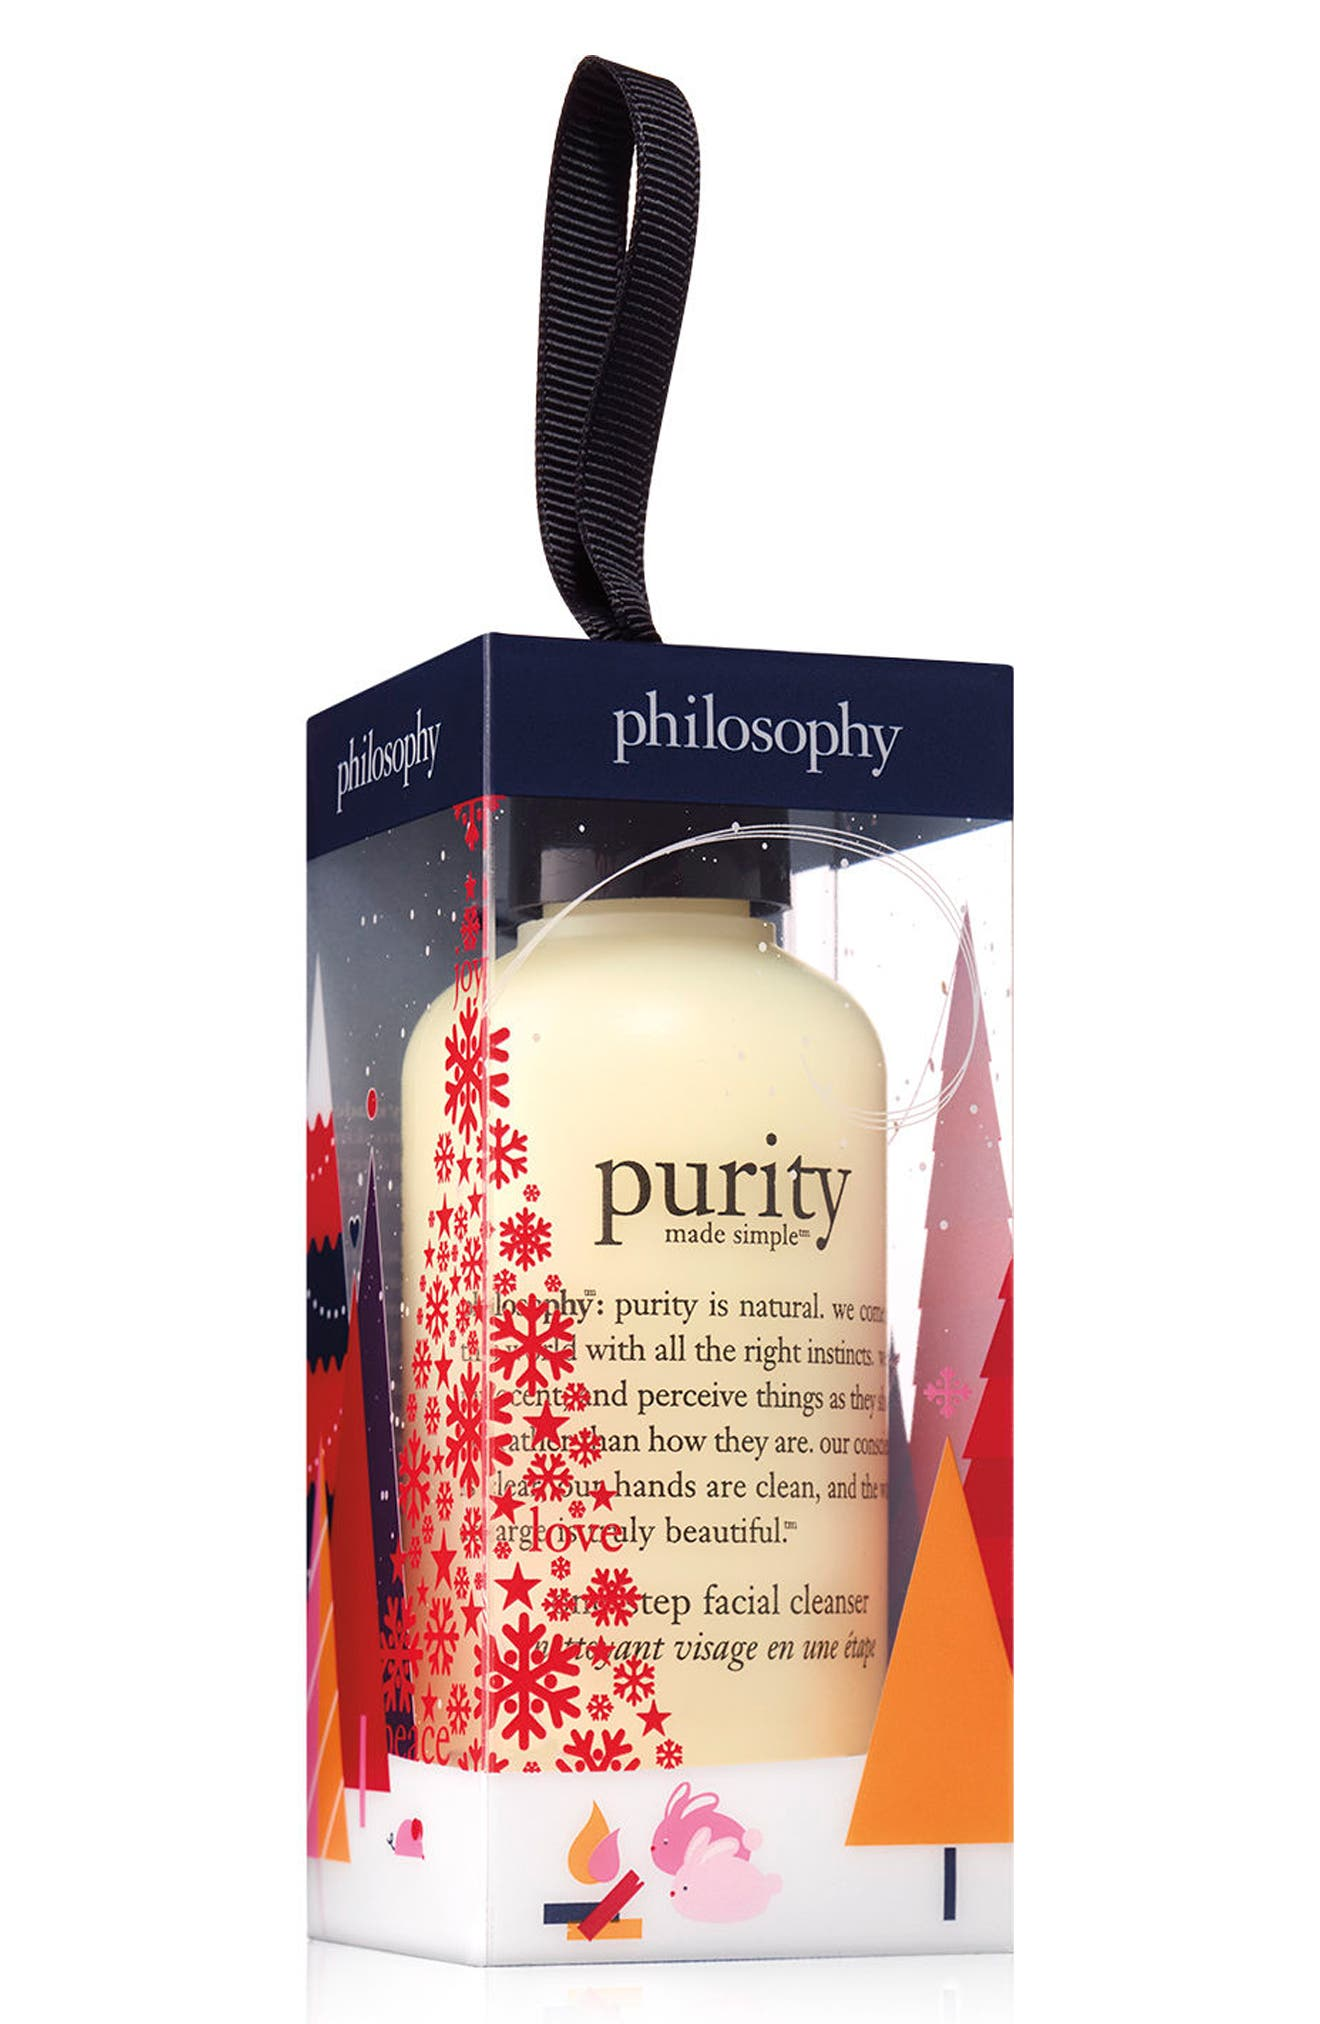 philosophy purity made simple one-step facial cleanser ornament (Limited Edition)